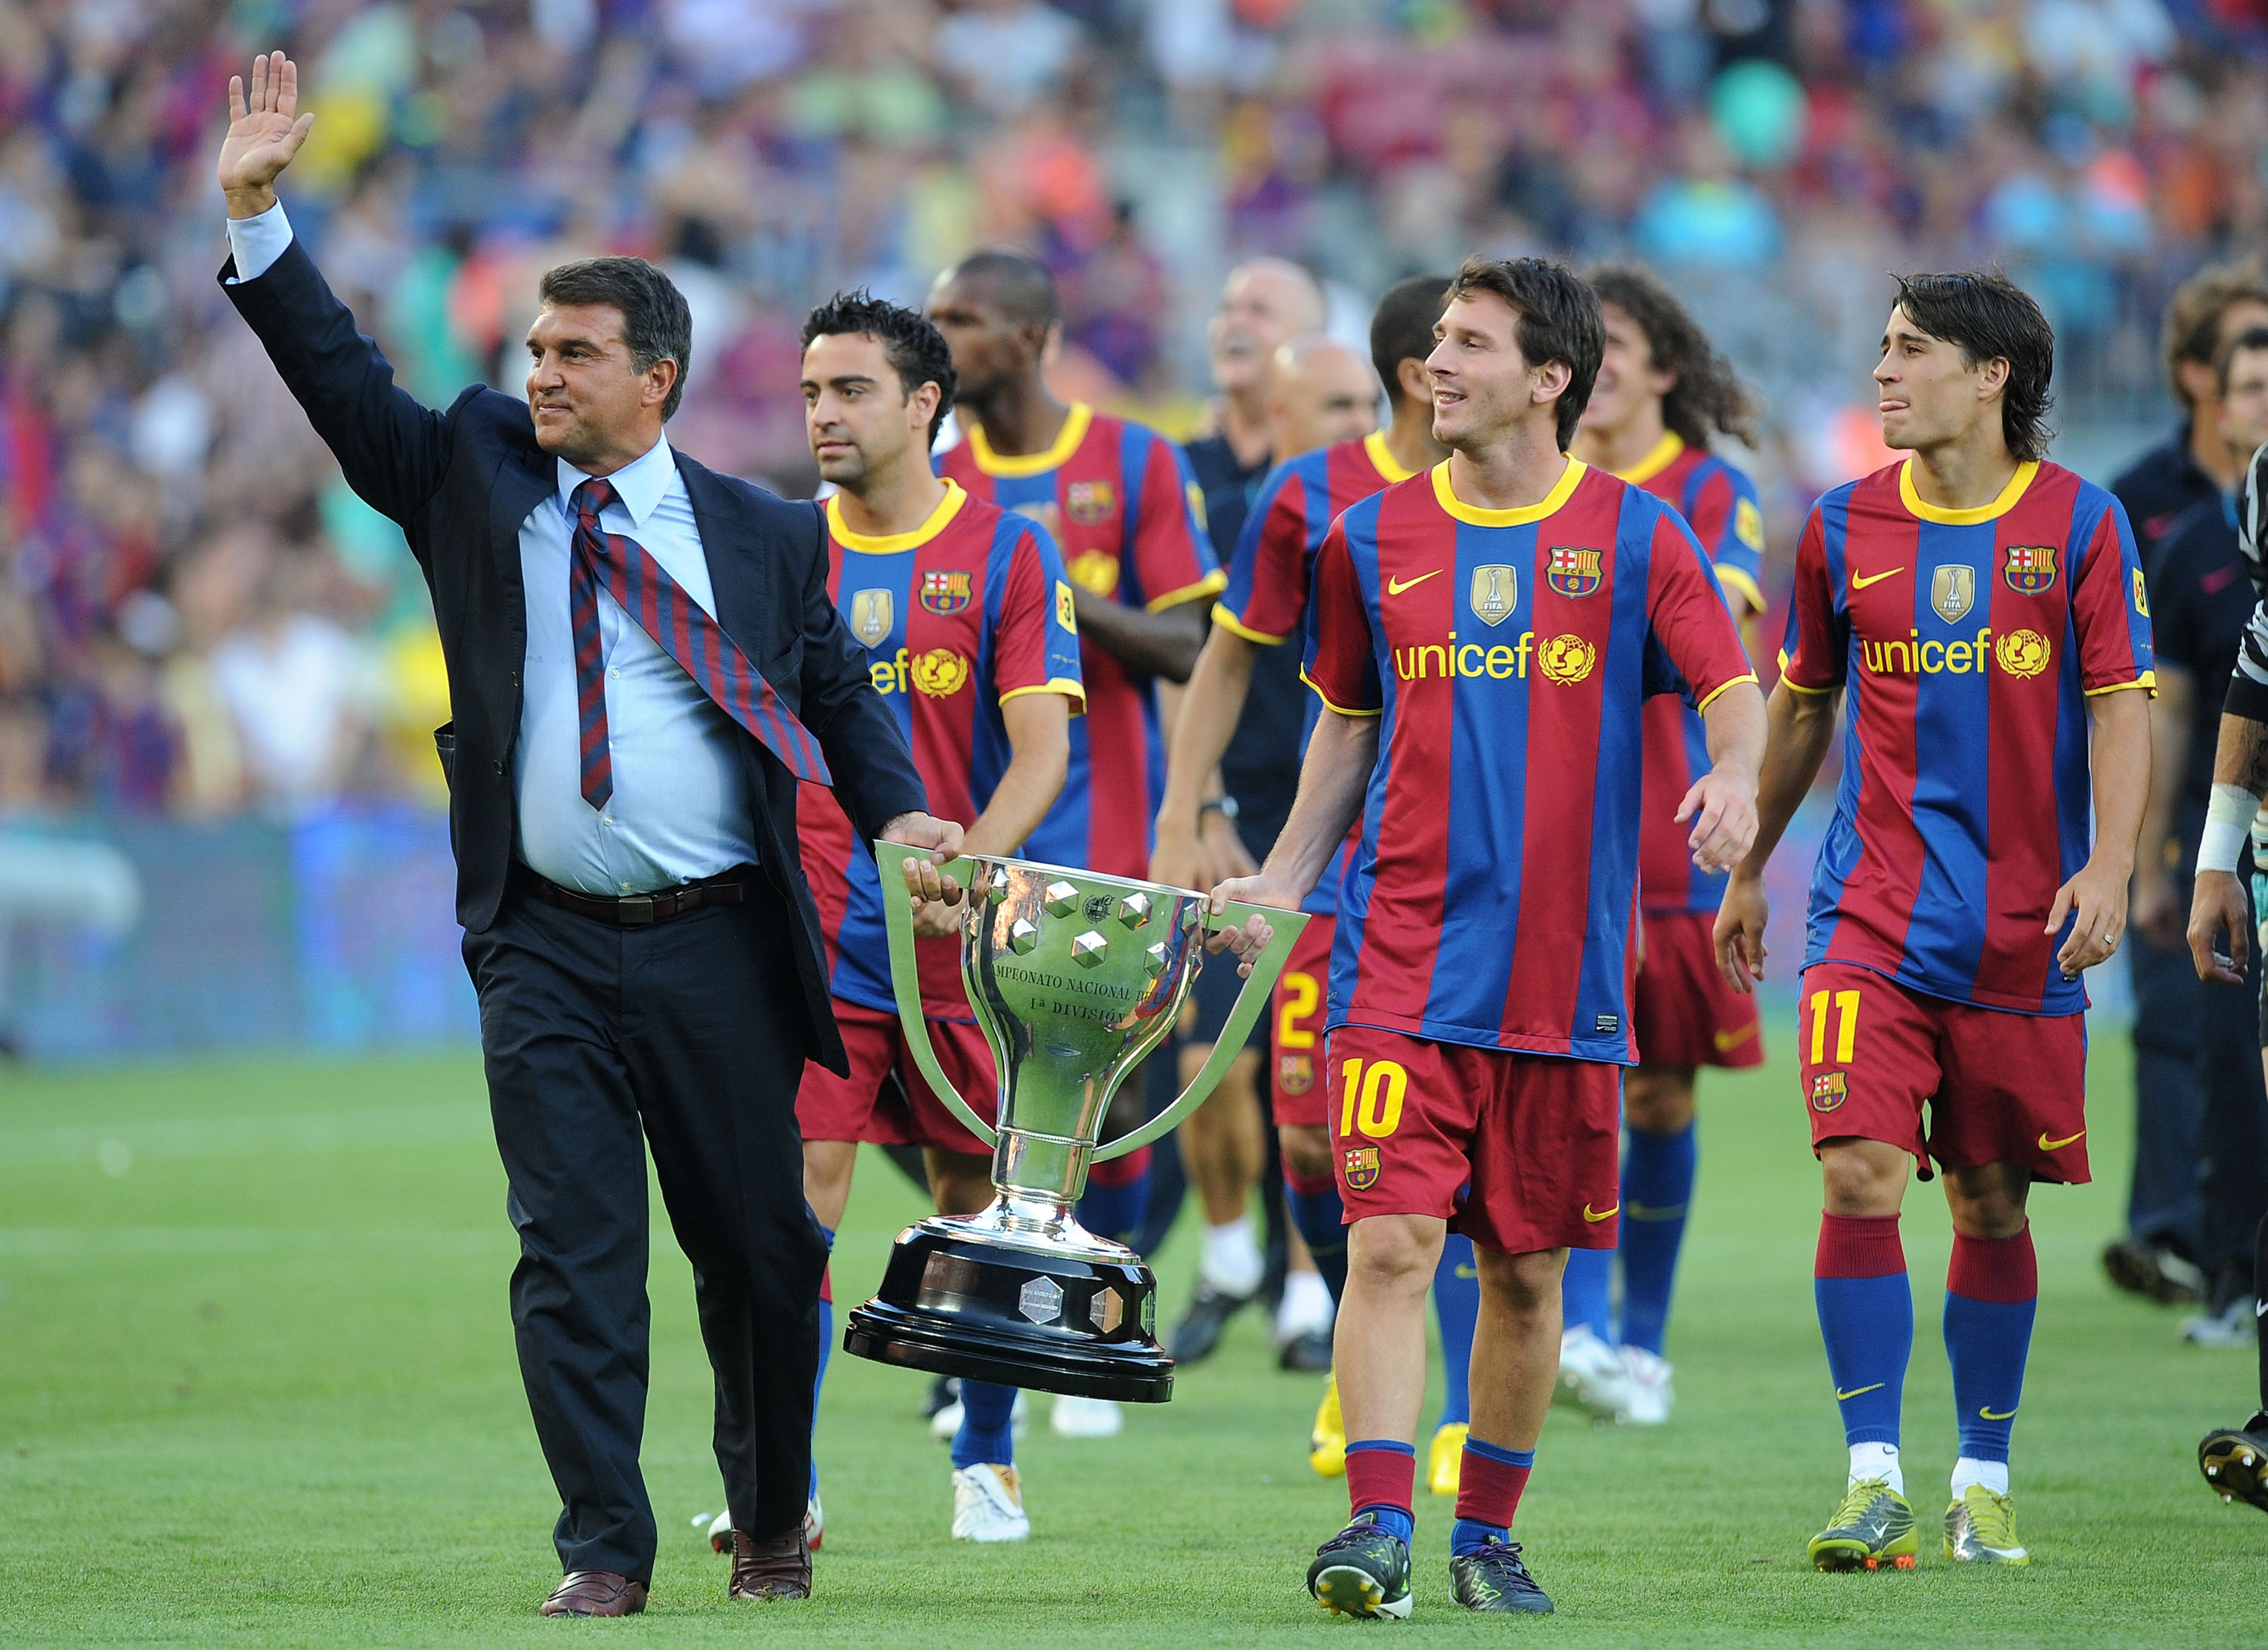 Fc Barcelona 10 Bold Predictions For The 2010 2011 Soccer Season Bleacher Report Latest News Videos And Highlights